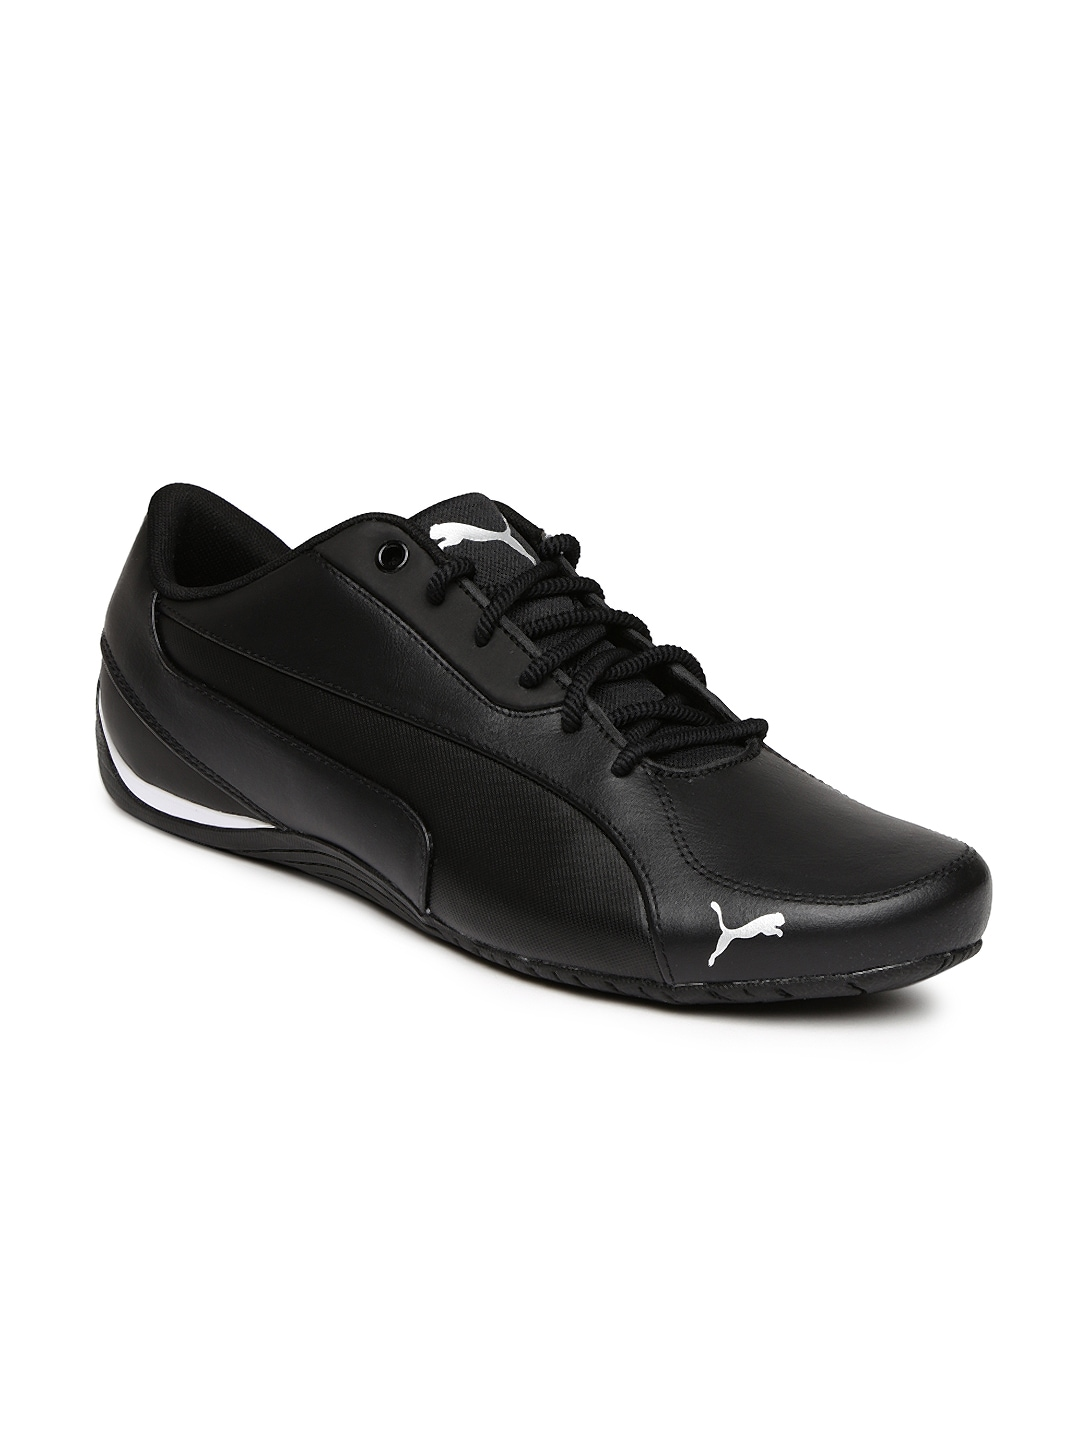 ff22a4ff41e Men Footwear - Buy Mens Footwear   Shoes Online in India - Myntra